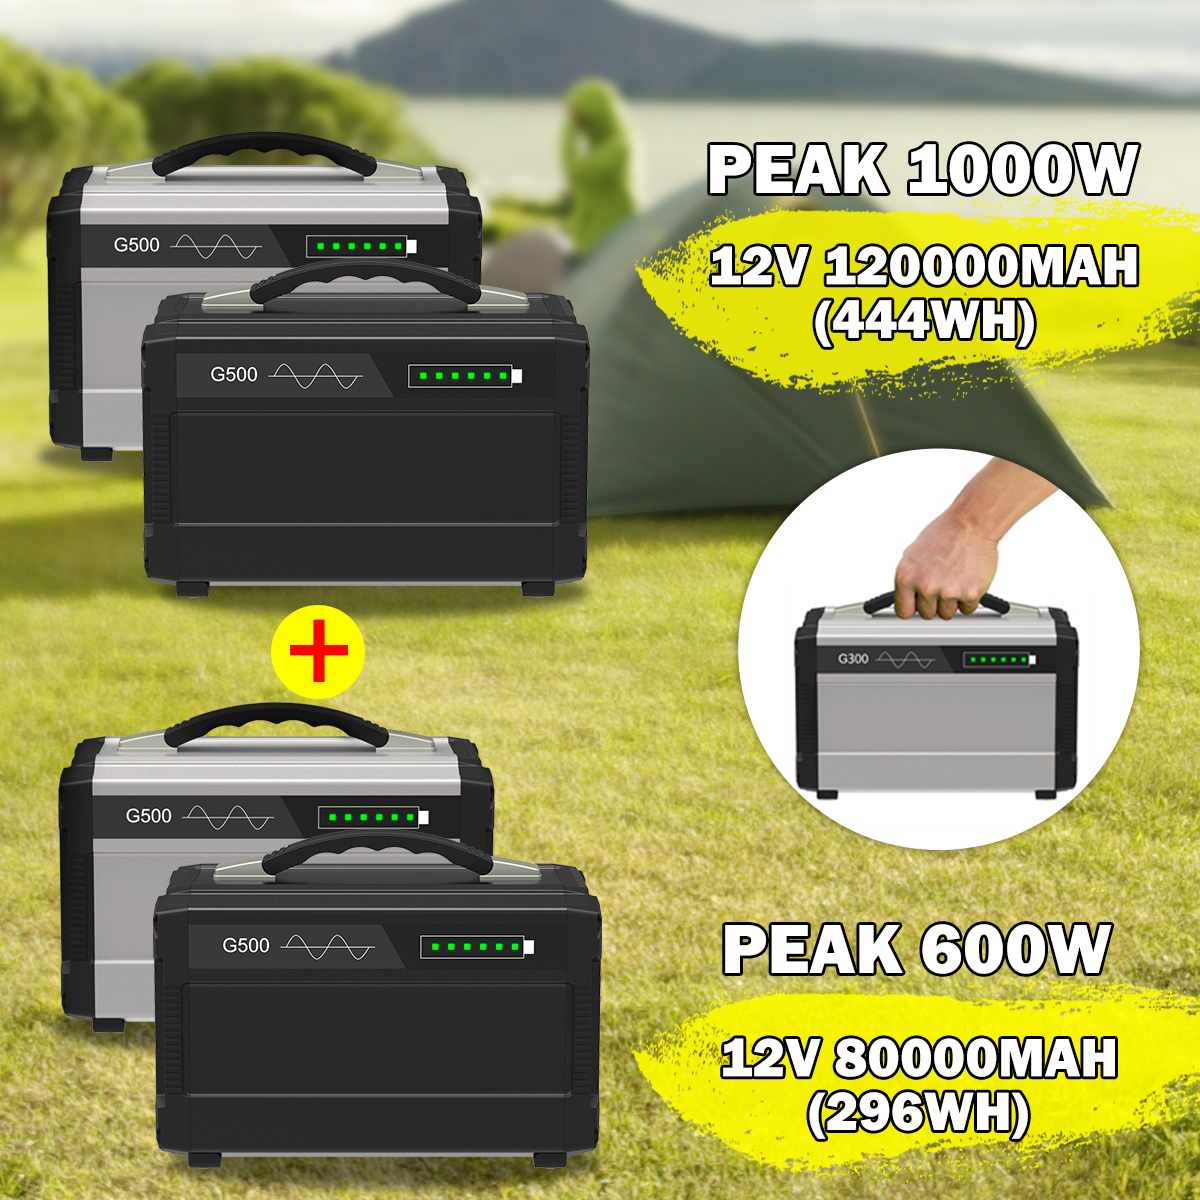 600W/1000W Max 8000/120000mAh Inverter Portable Solar Generator UPS Pure Sine Waves Power Supply USB LCD Display Energy Storage